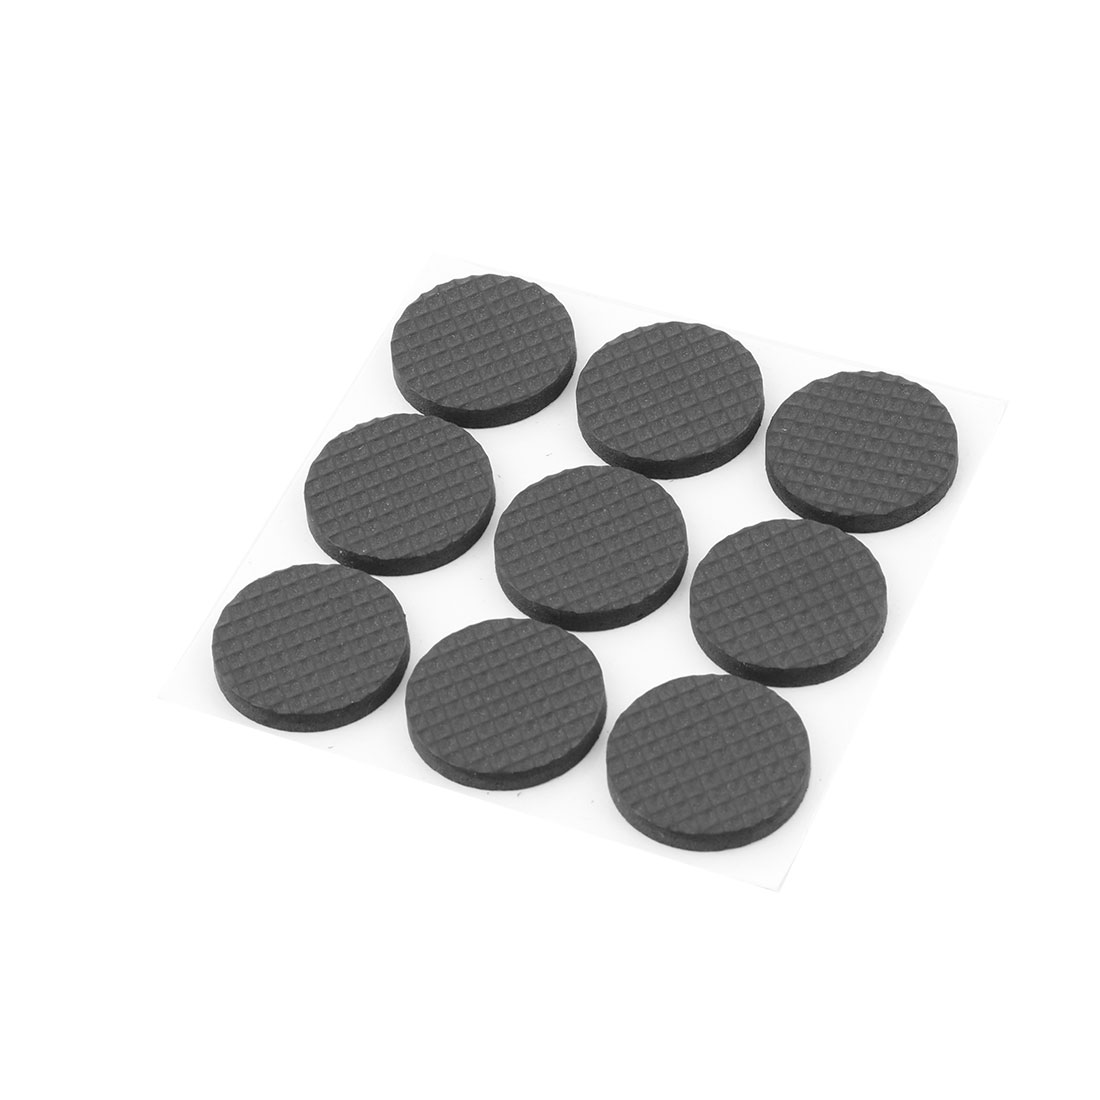 Furniture Table Foot Leg Rubber Anti Scratch Slip Protectors Covers Pads Mats Black 9pcs